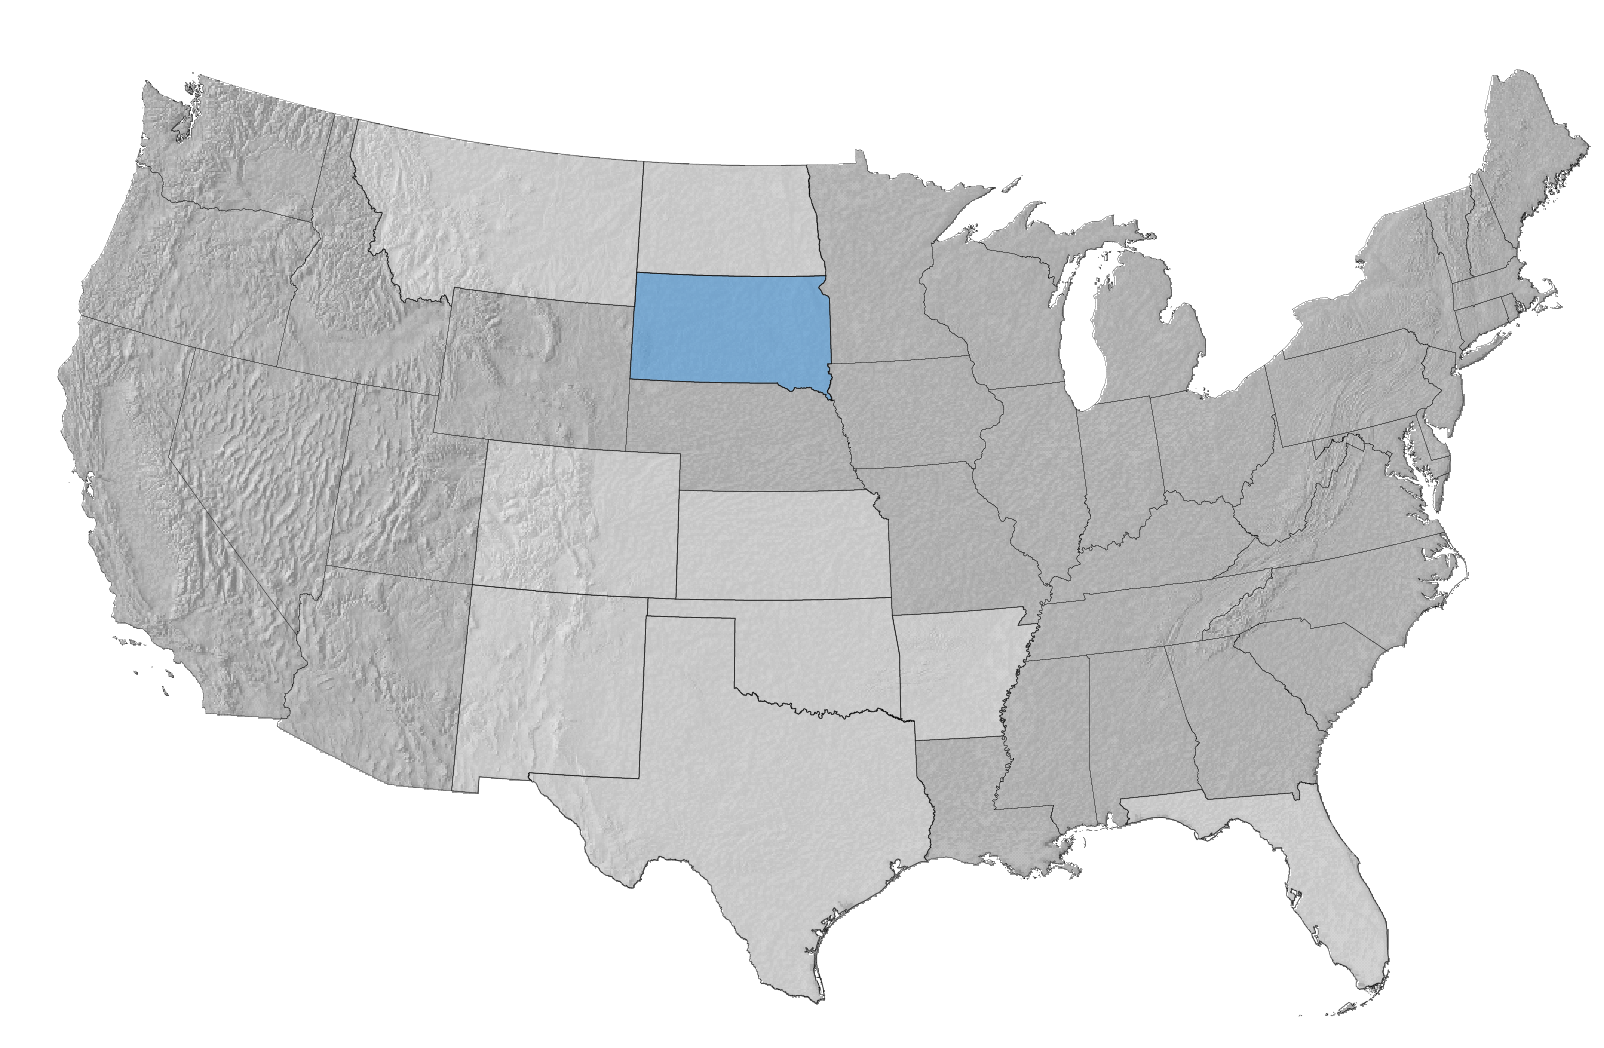 USA Map with South Dakota Highlighted